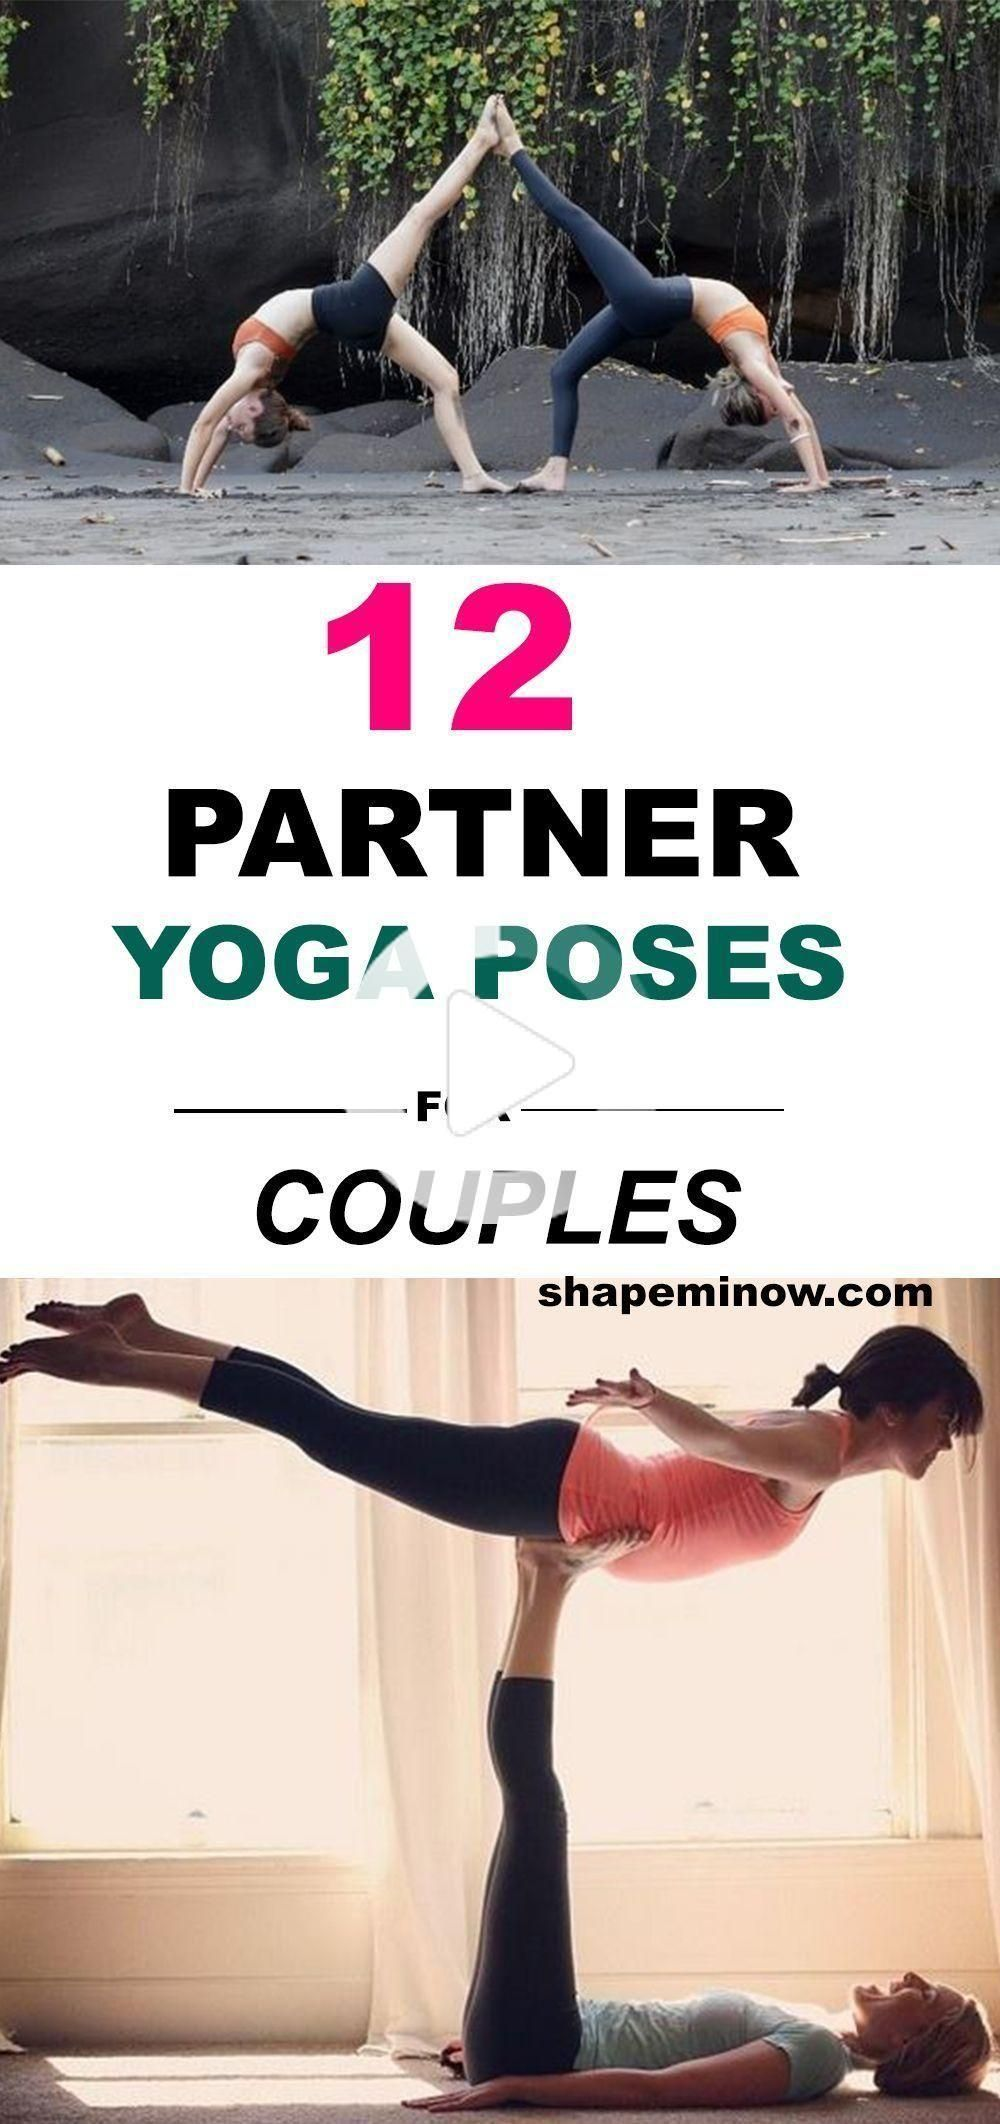 12 Easy Yoga Poses For Two People Friends Partner Or Couples In 2020 Yoga Poses For Two Easy Yoga Poses Cool Yoga Poses